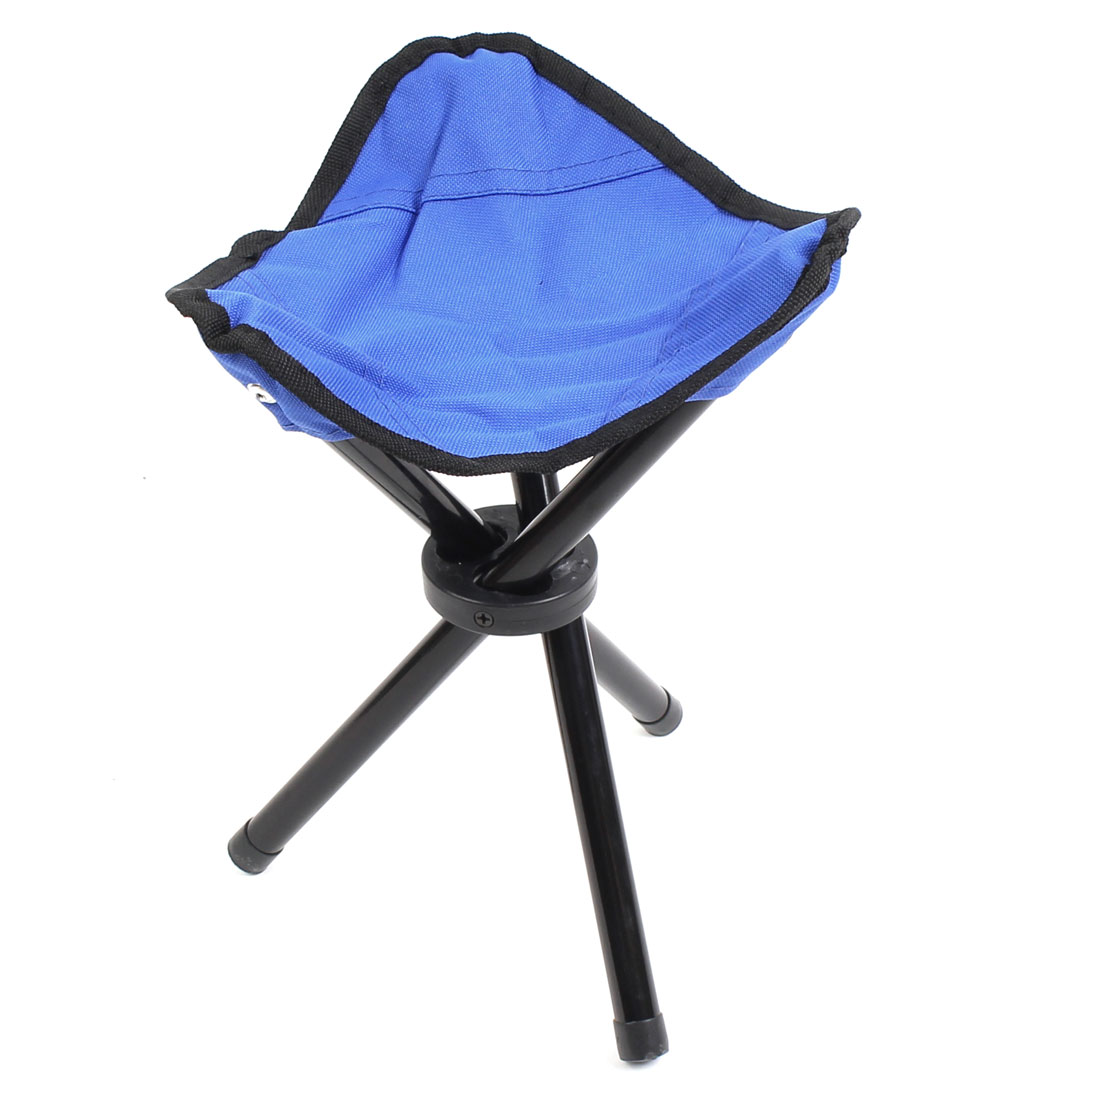 Fishing Travel Home Metal Frame Nylon Seat Portable Folding Tripod Chair Stool Blue